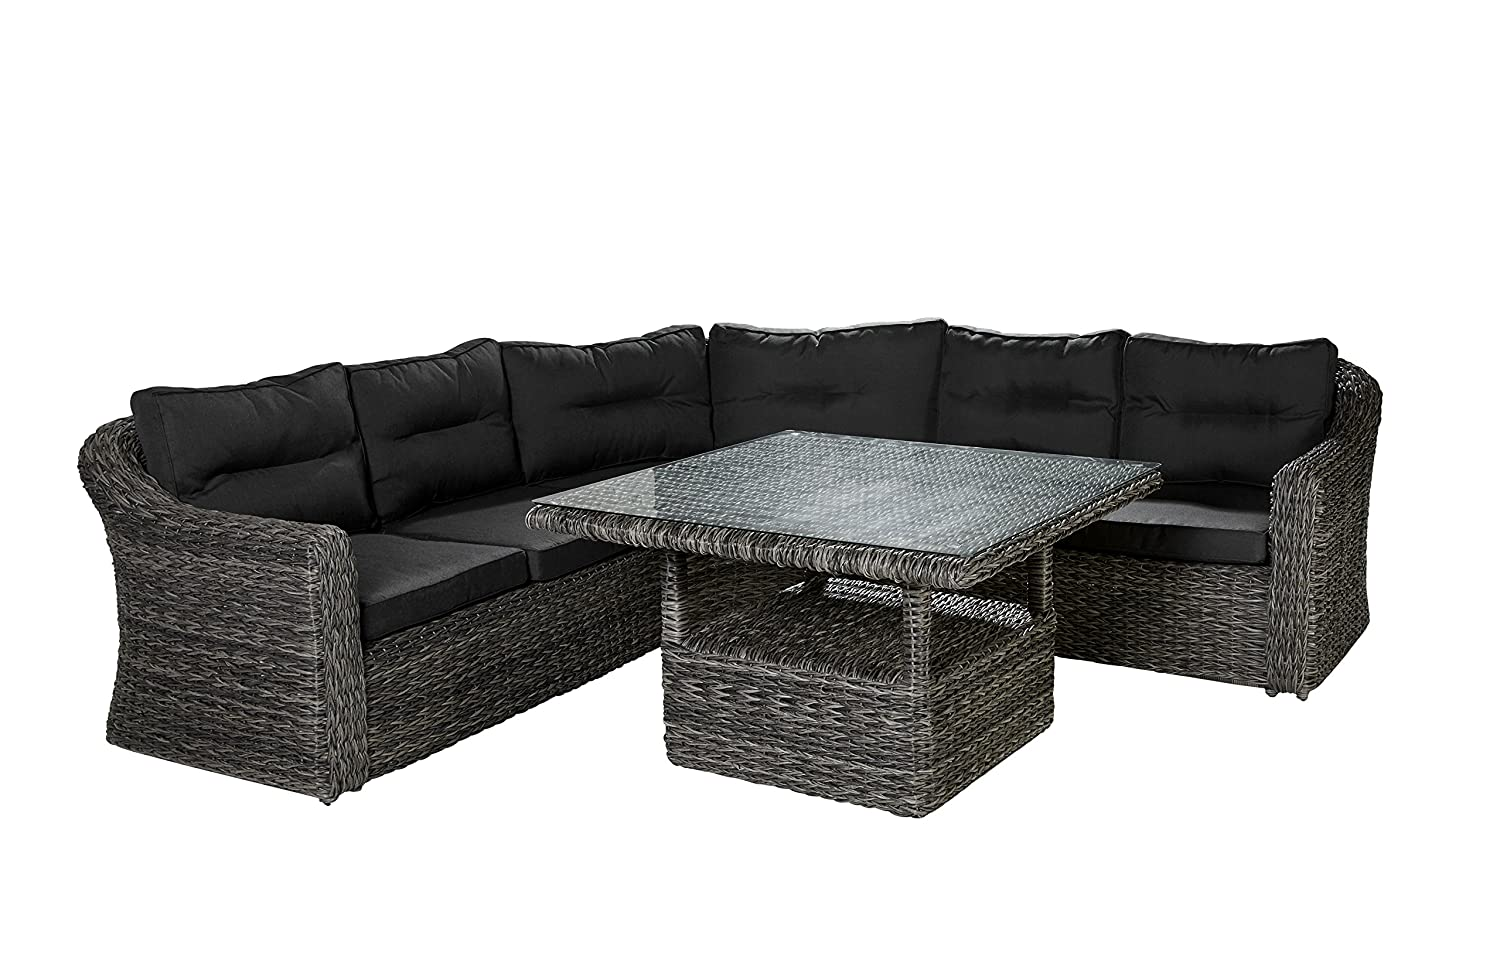 essgruppe essecke gartensitzgruppe speiselounge esstisch mit eckbank dining set alu polyrattan. Black Bedroom Furniture Sets. Home Design Ideas